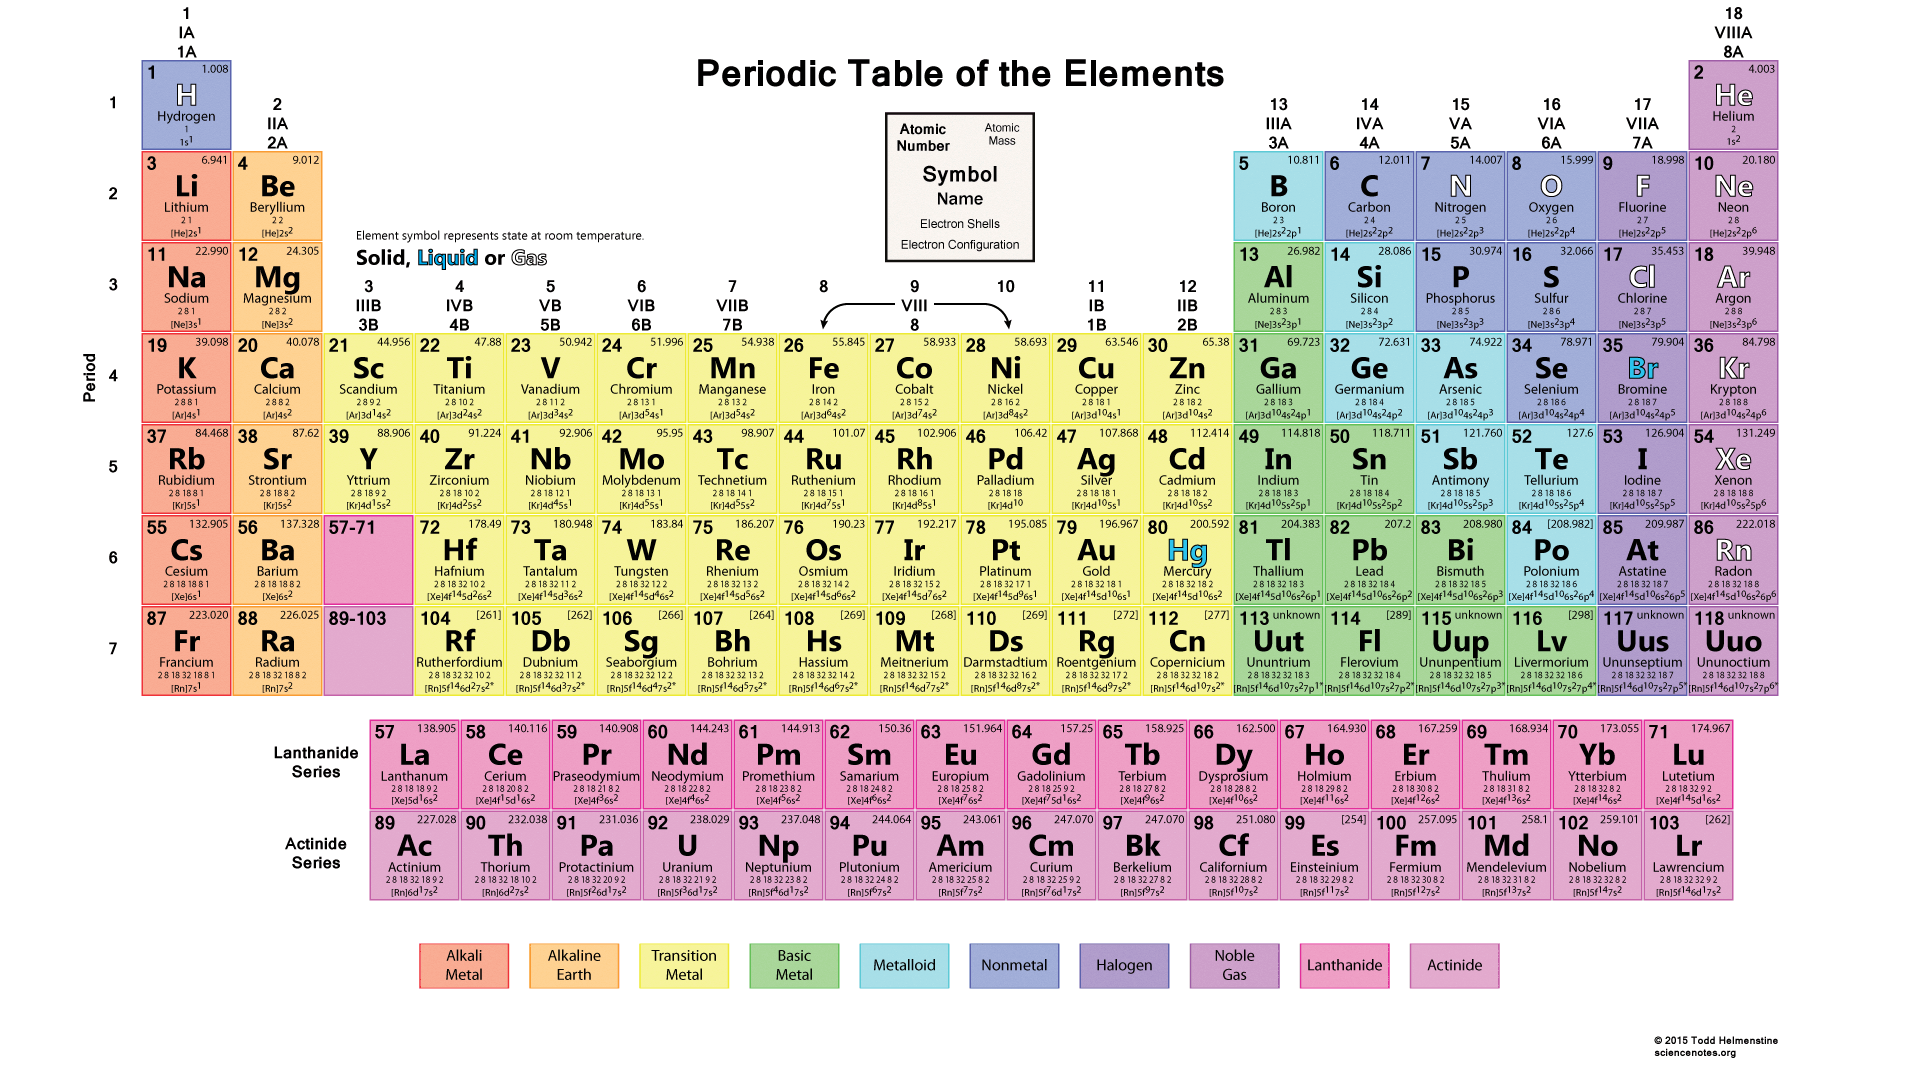 In what order are the elements of the periodic table arranged